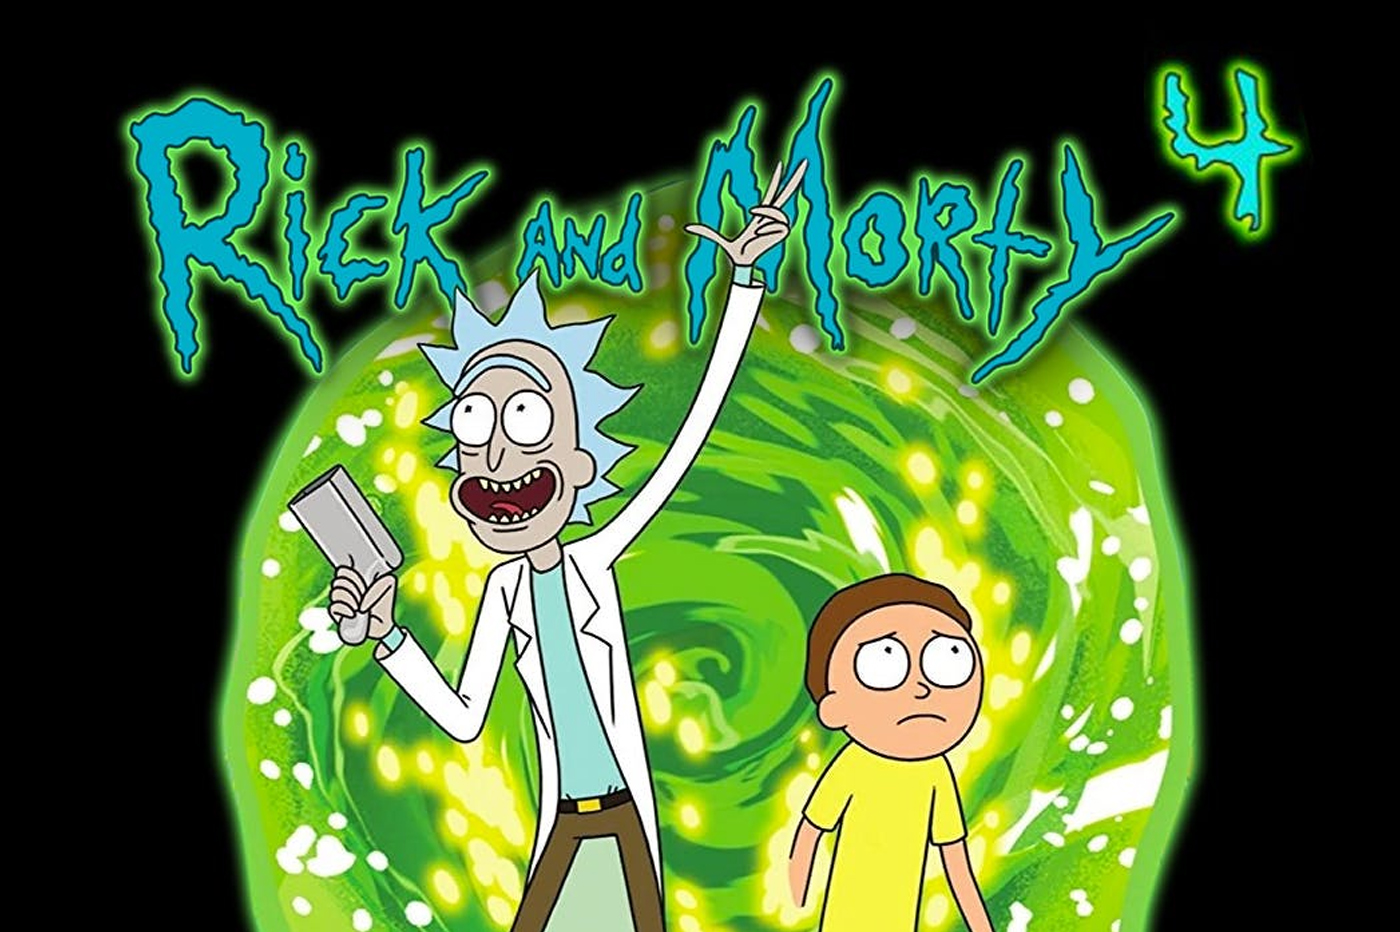 Rick and Morty Saison 4 Date de Sortie